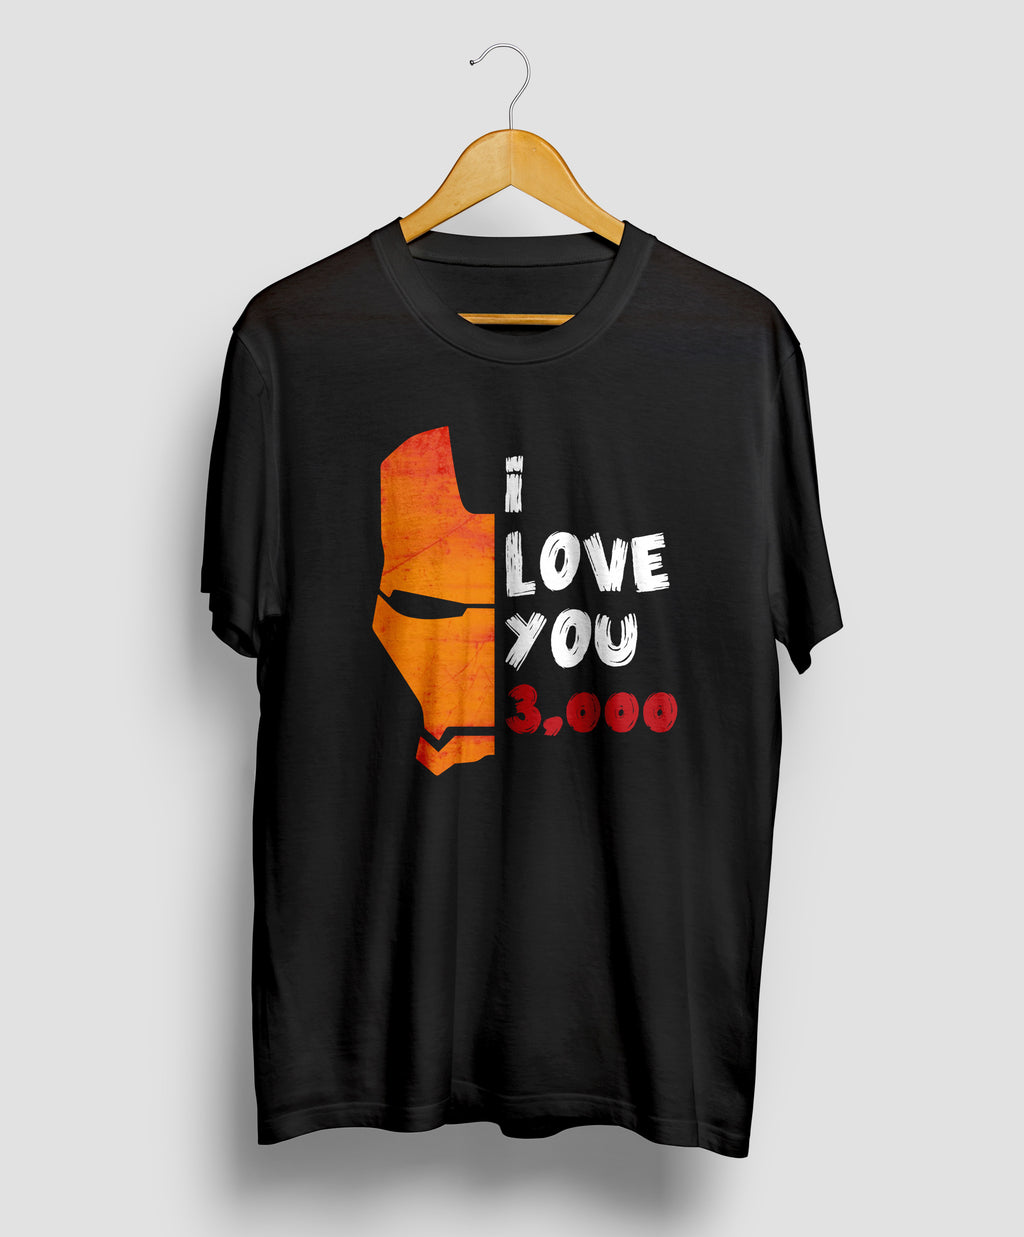 Love You 3000 Iron Man - Buy Two & Use Code: OFF50